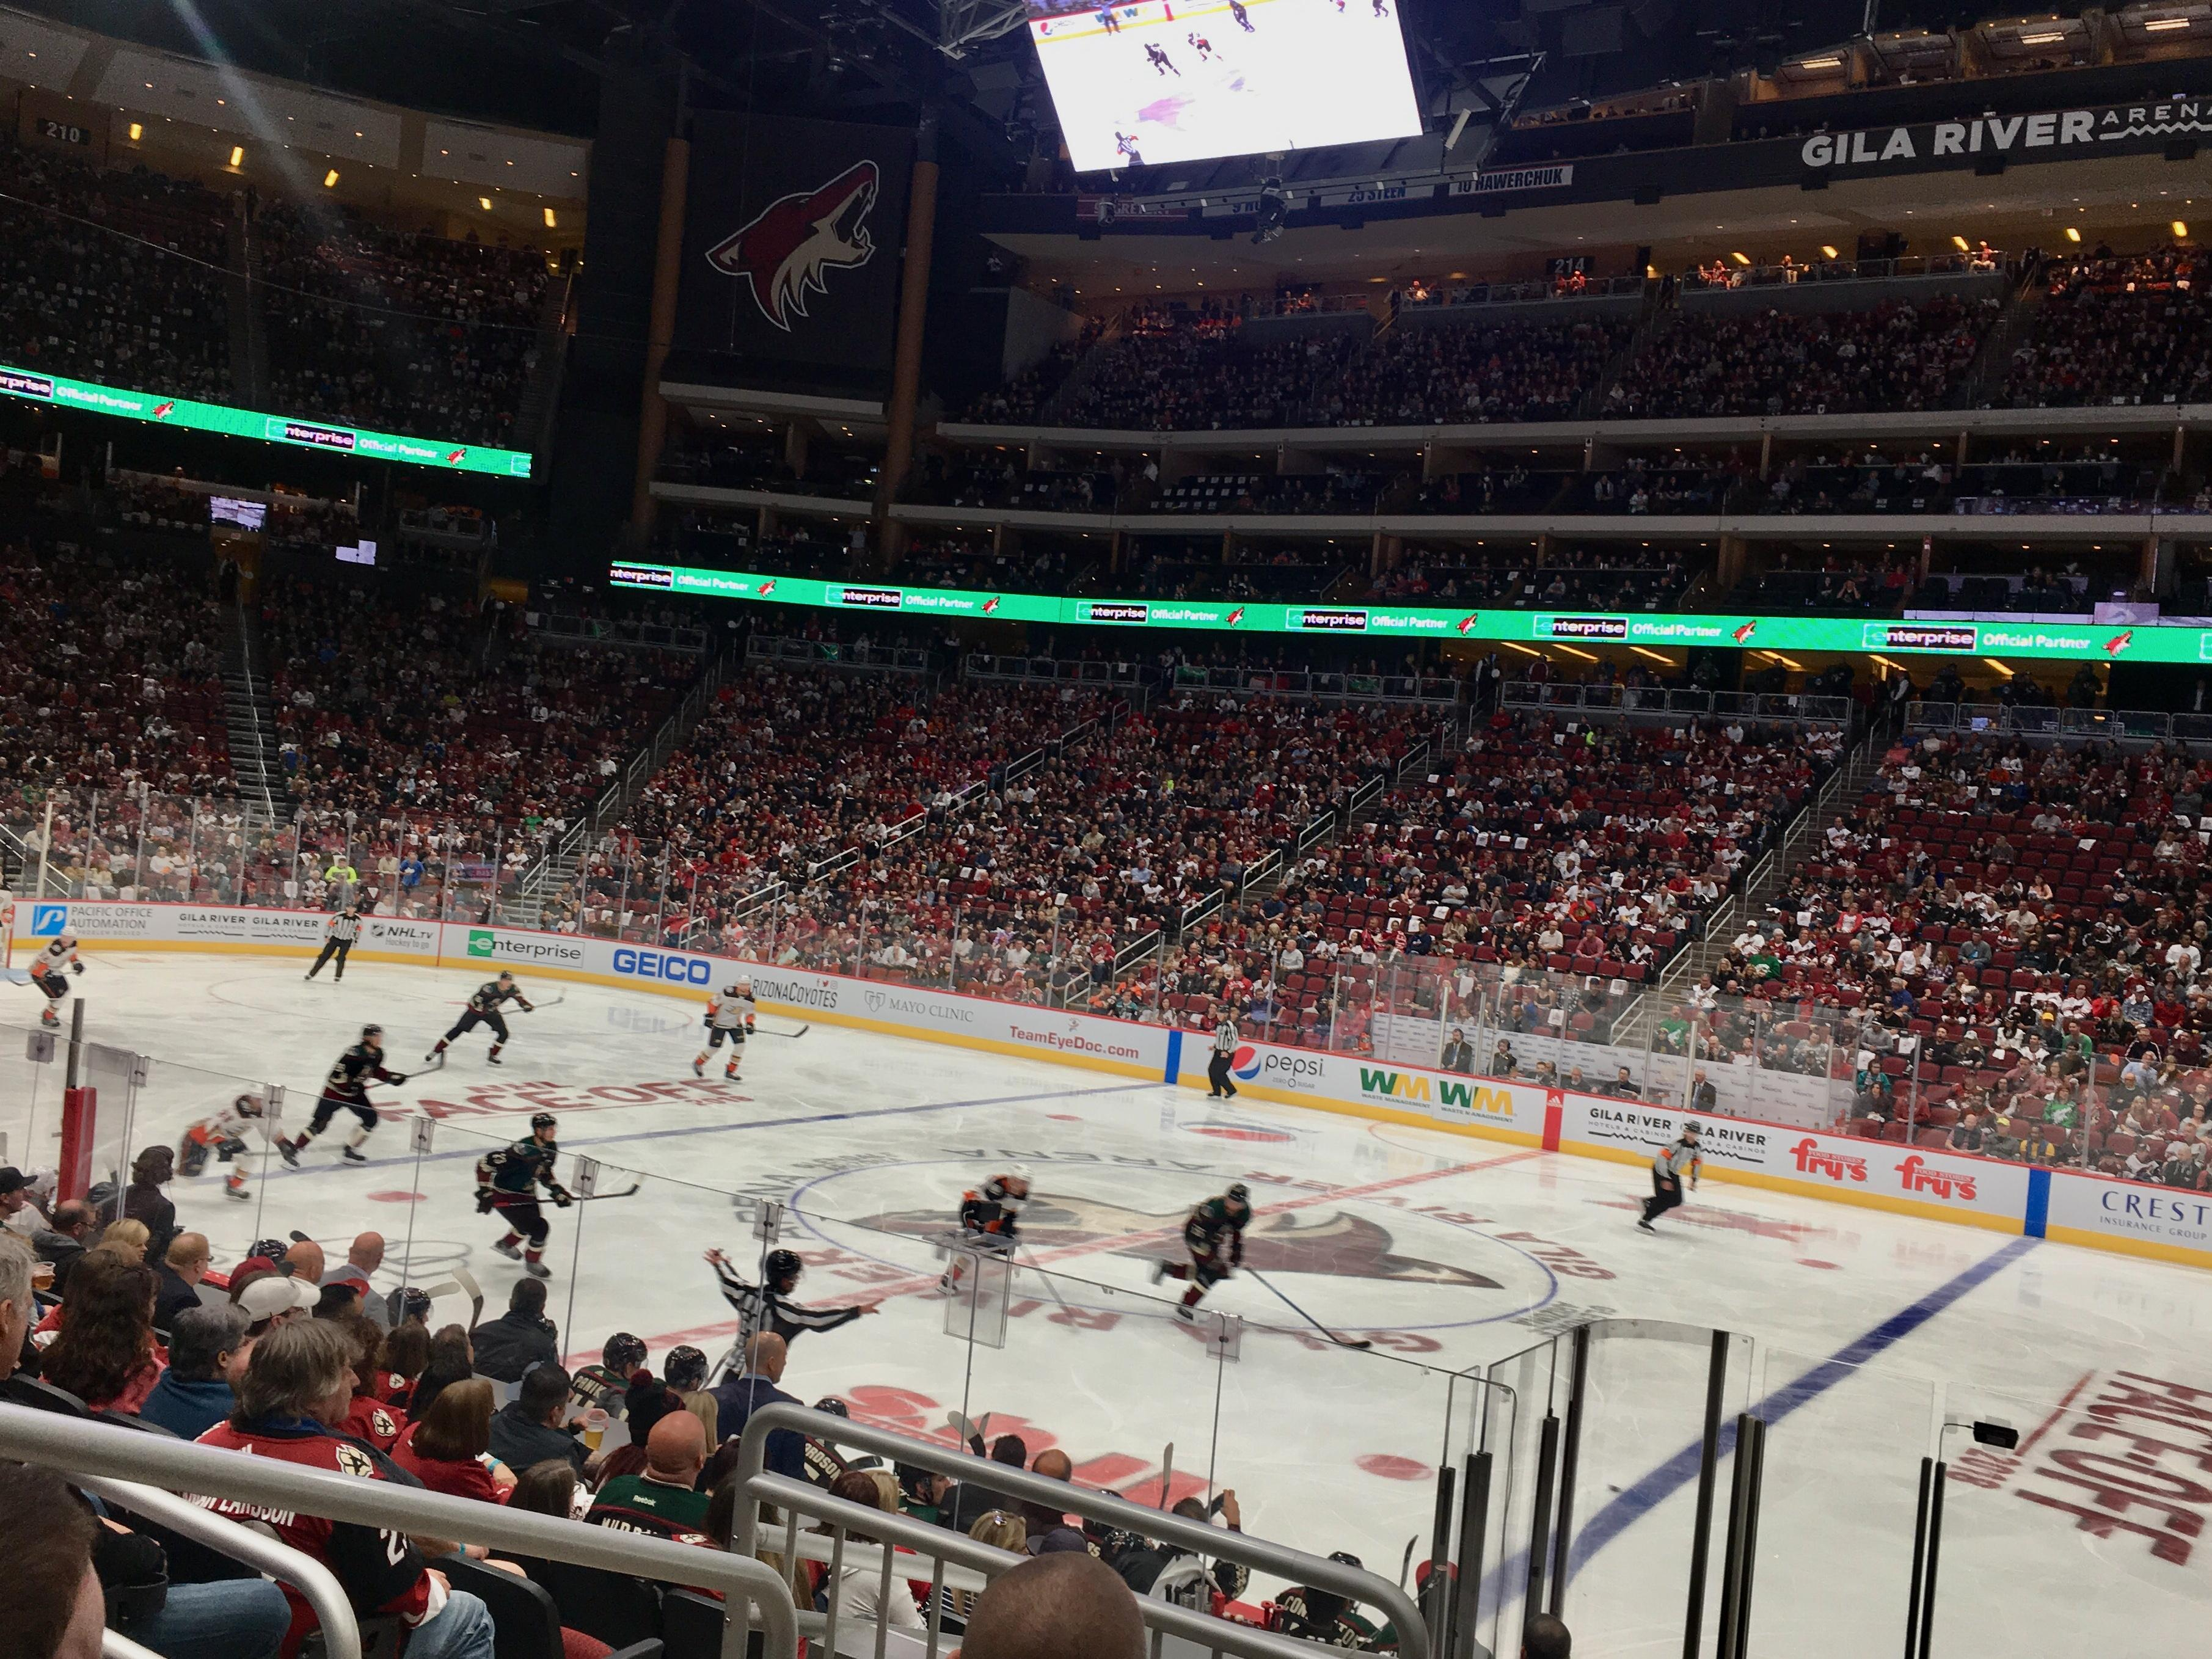 Arizona Coyotes on the ice